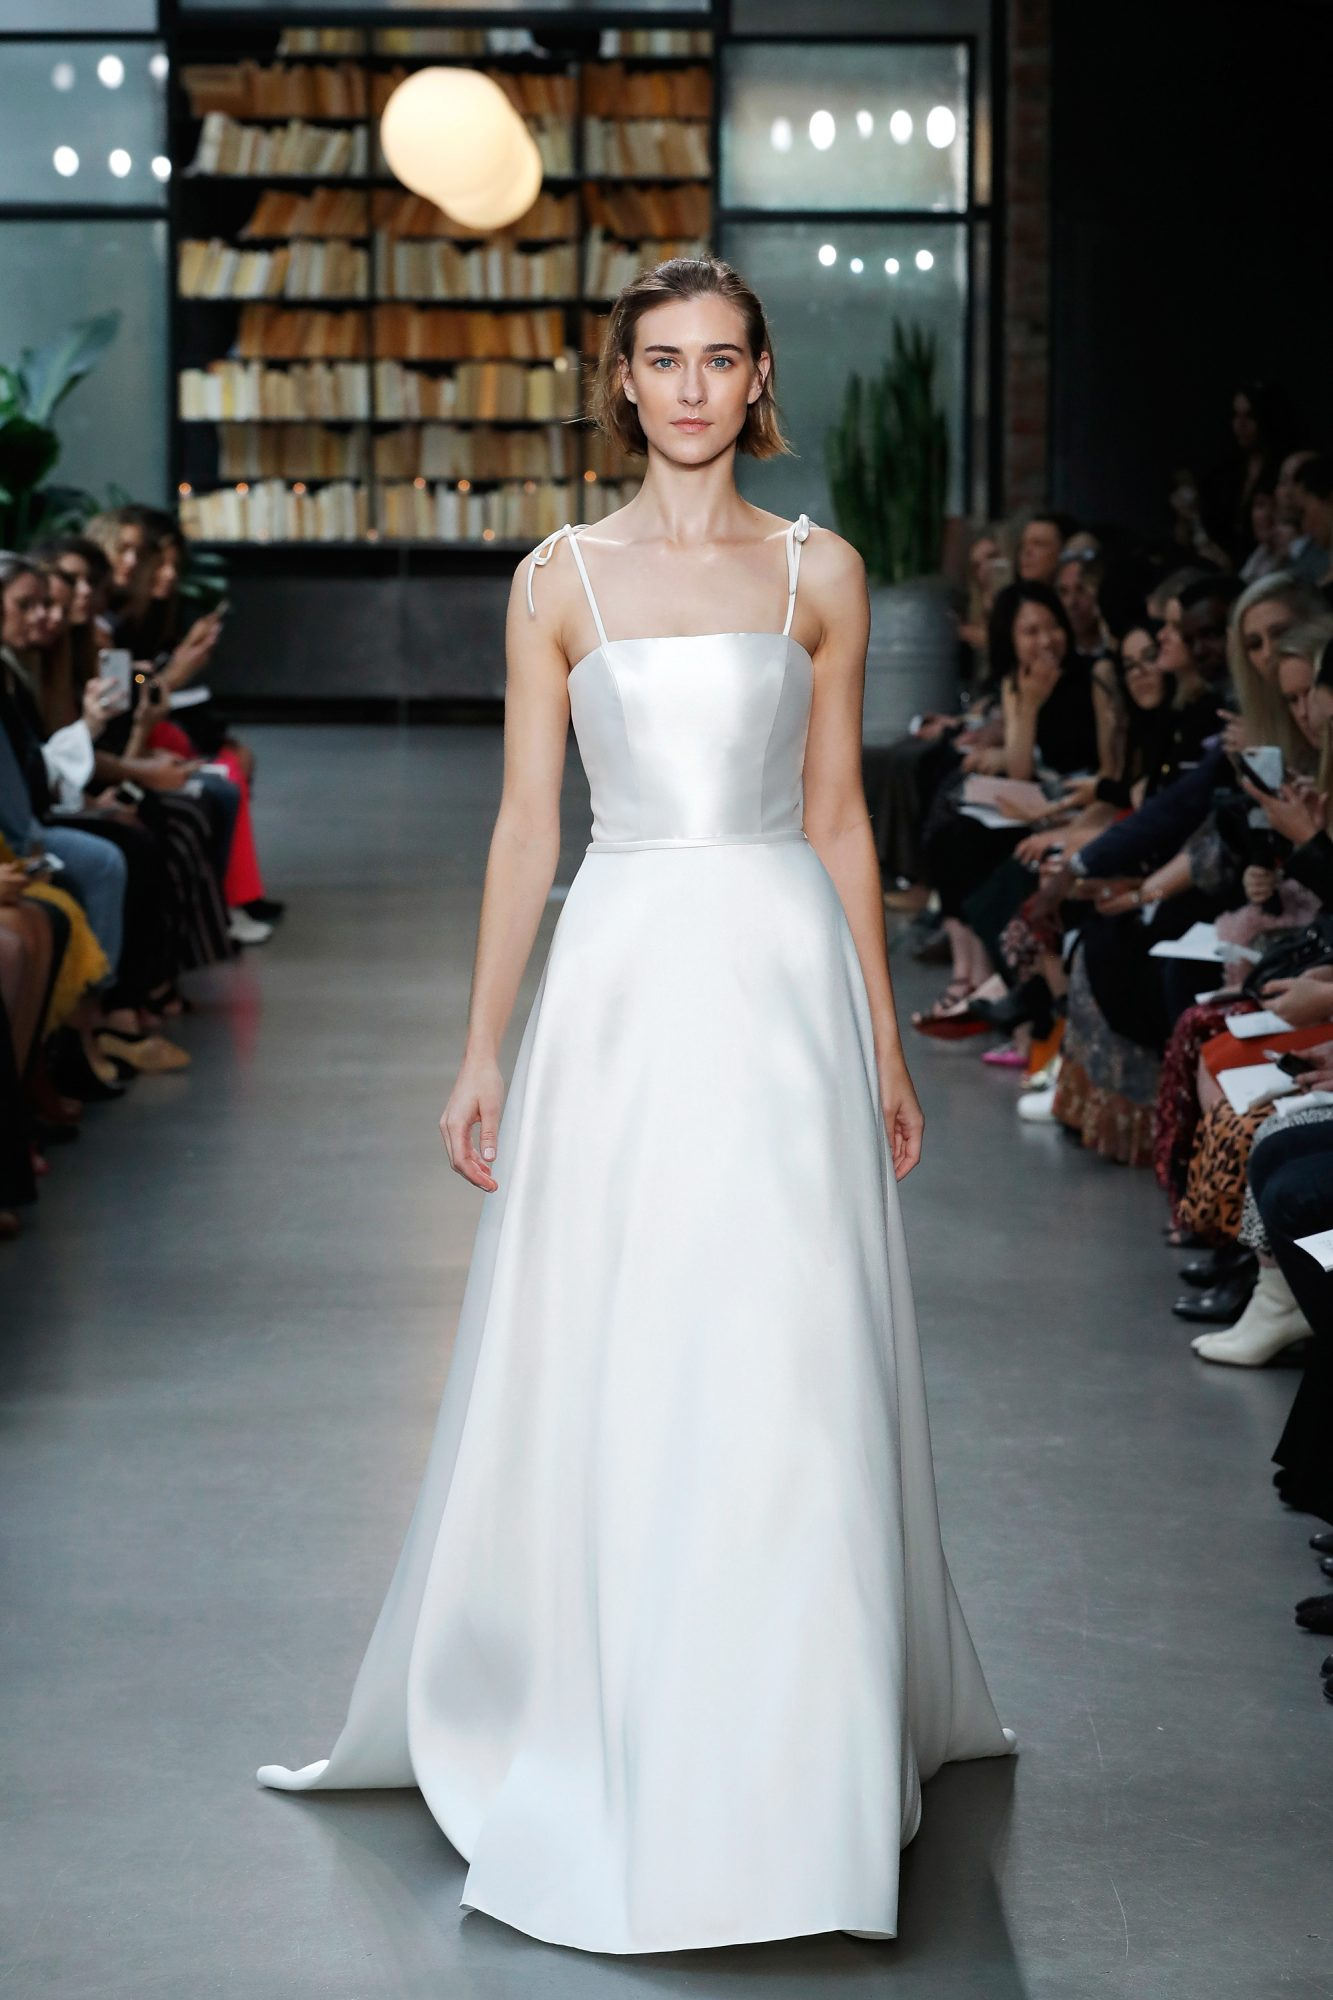 nouvelle amsale wedding dress satin a-line spaghetti strap ties